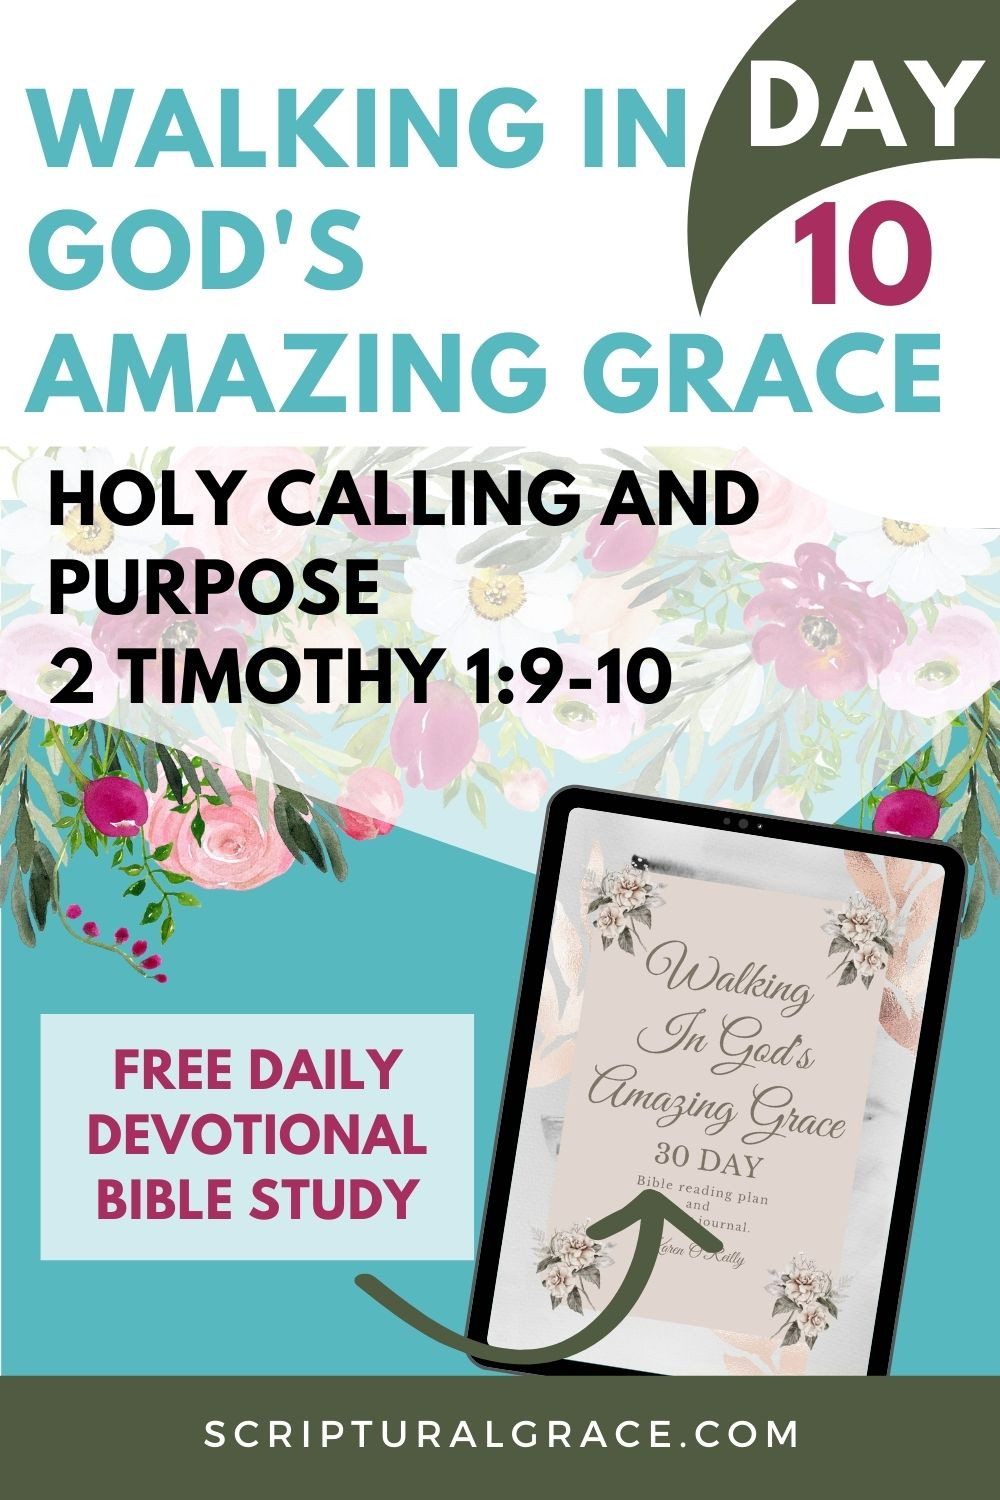 Daily devotional for women 2 Timothy 1:9-10